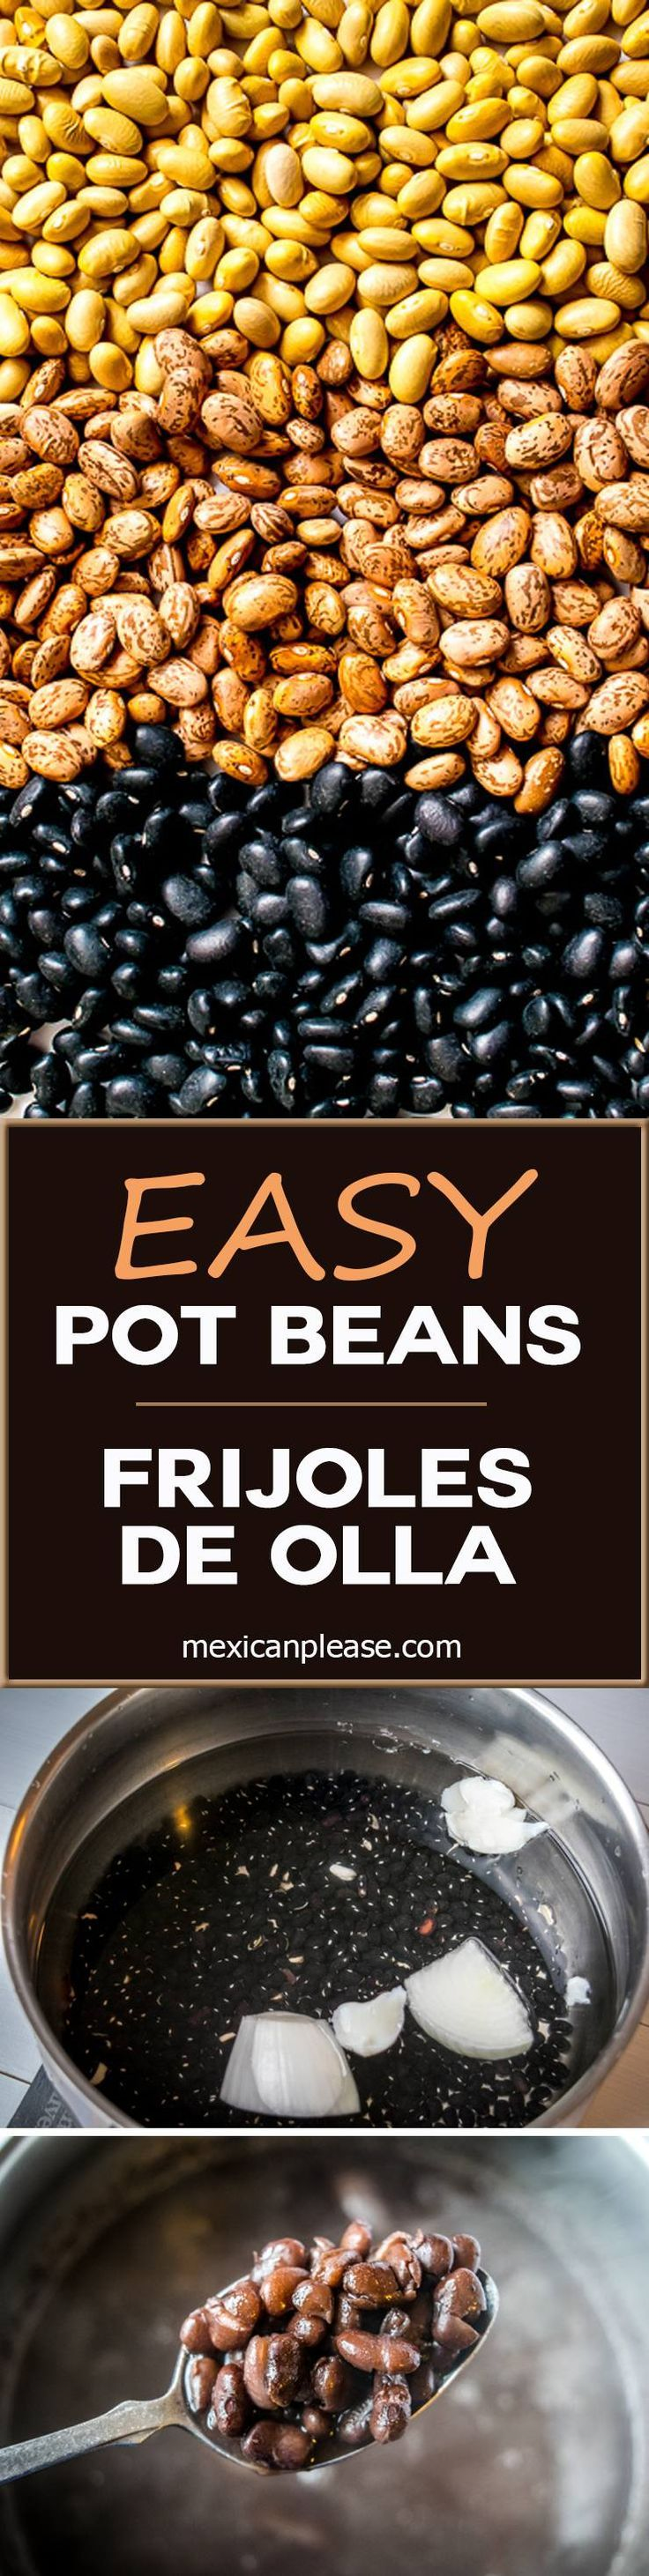 It's surprising how easy it is to make a batch of authentic Mexican pot beans.  These Frijoles de Olla not only taste better than storebought beans, they're also very kind to your wallet!  http://mexicanplease.com